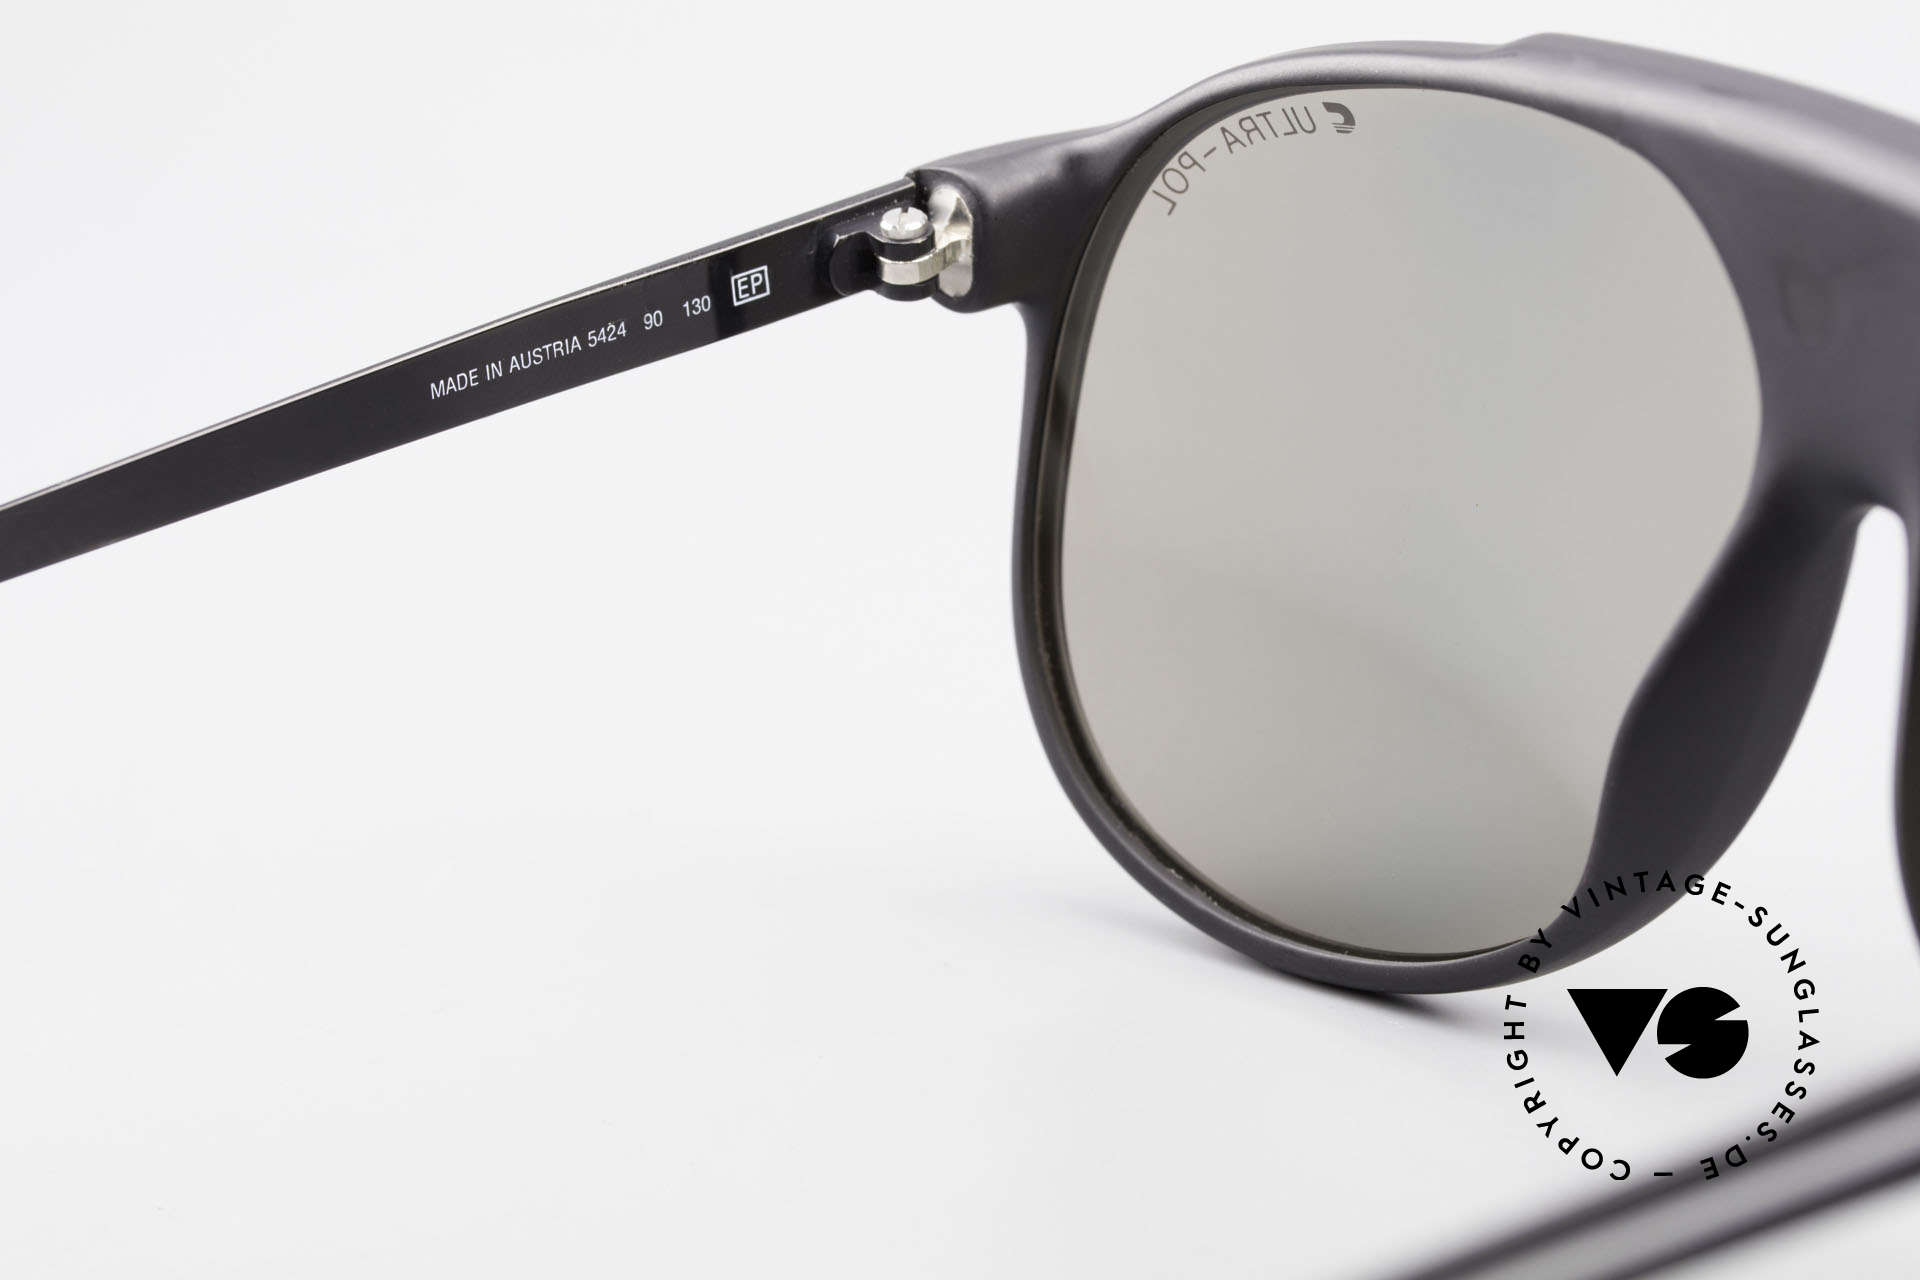 Carrera 5424 Sunglasses Polarized Lens 80's, new old stock (like all our VINTAGE Carrera shades), Made for Men